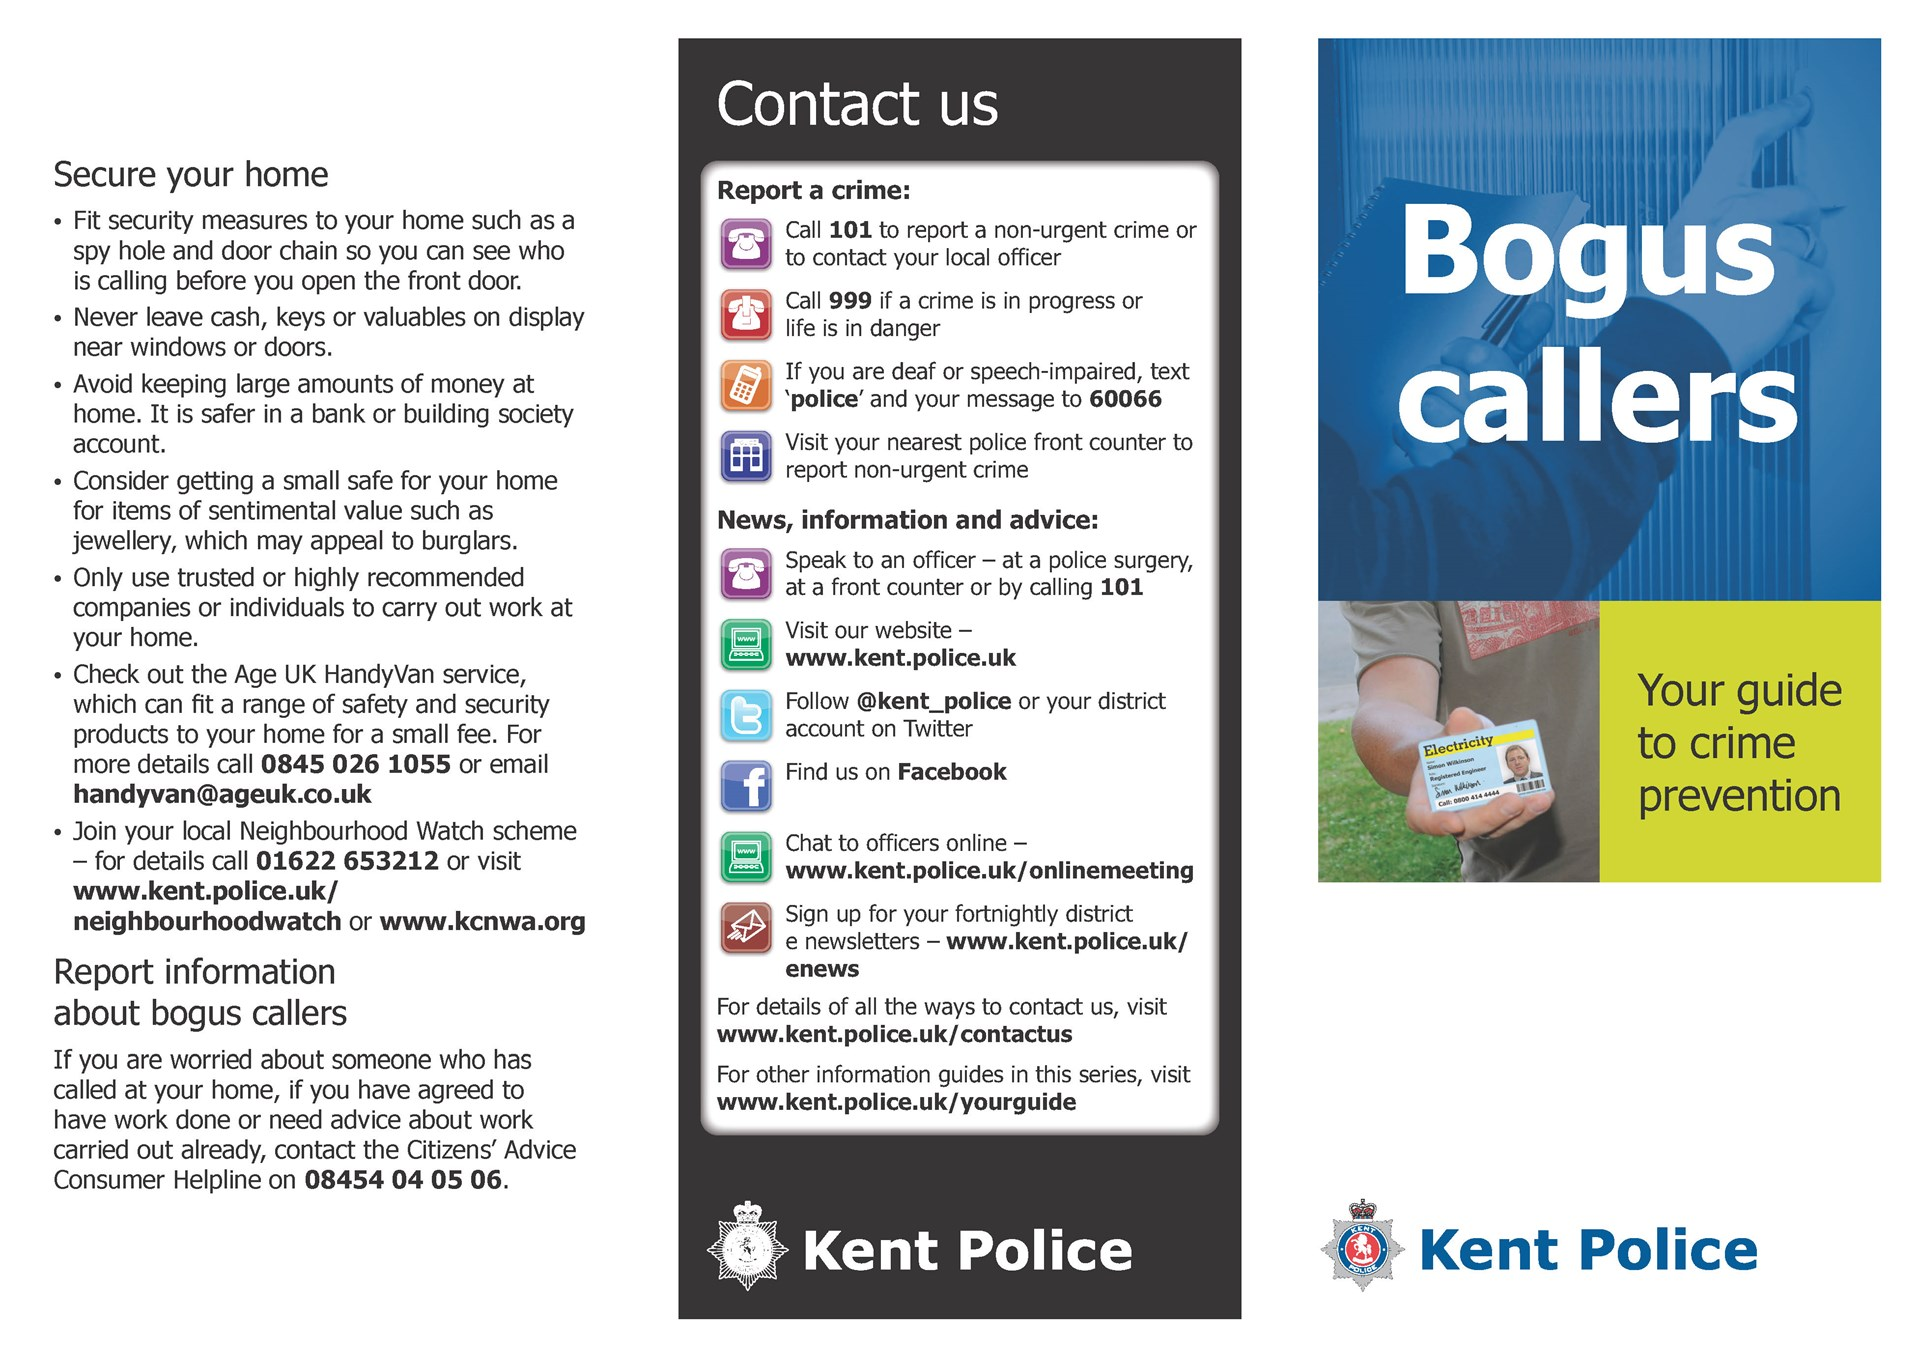 Dunton Green Parish Council Bogus Callers